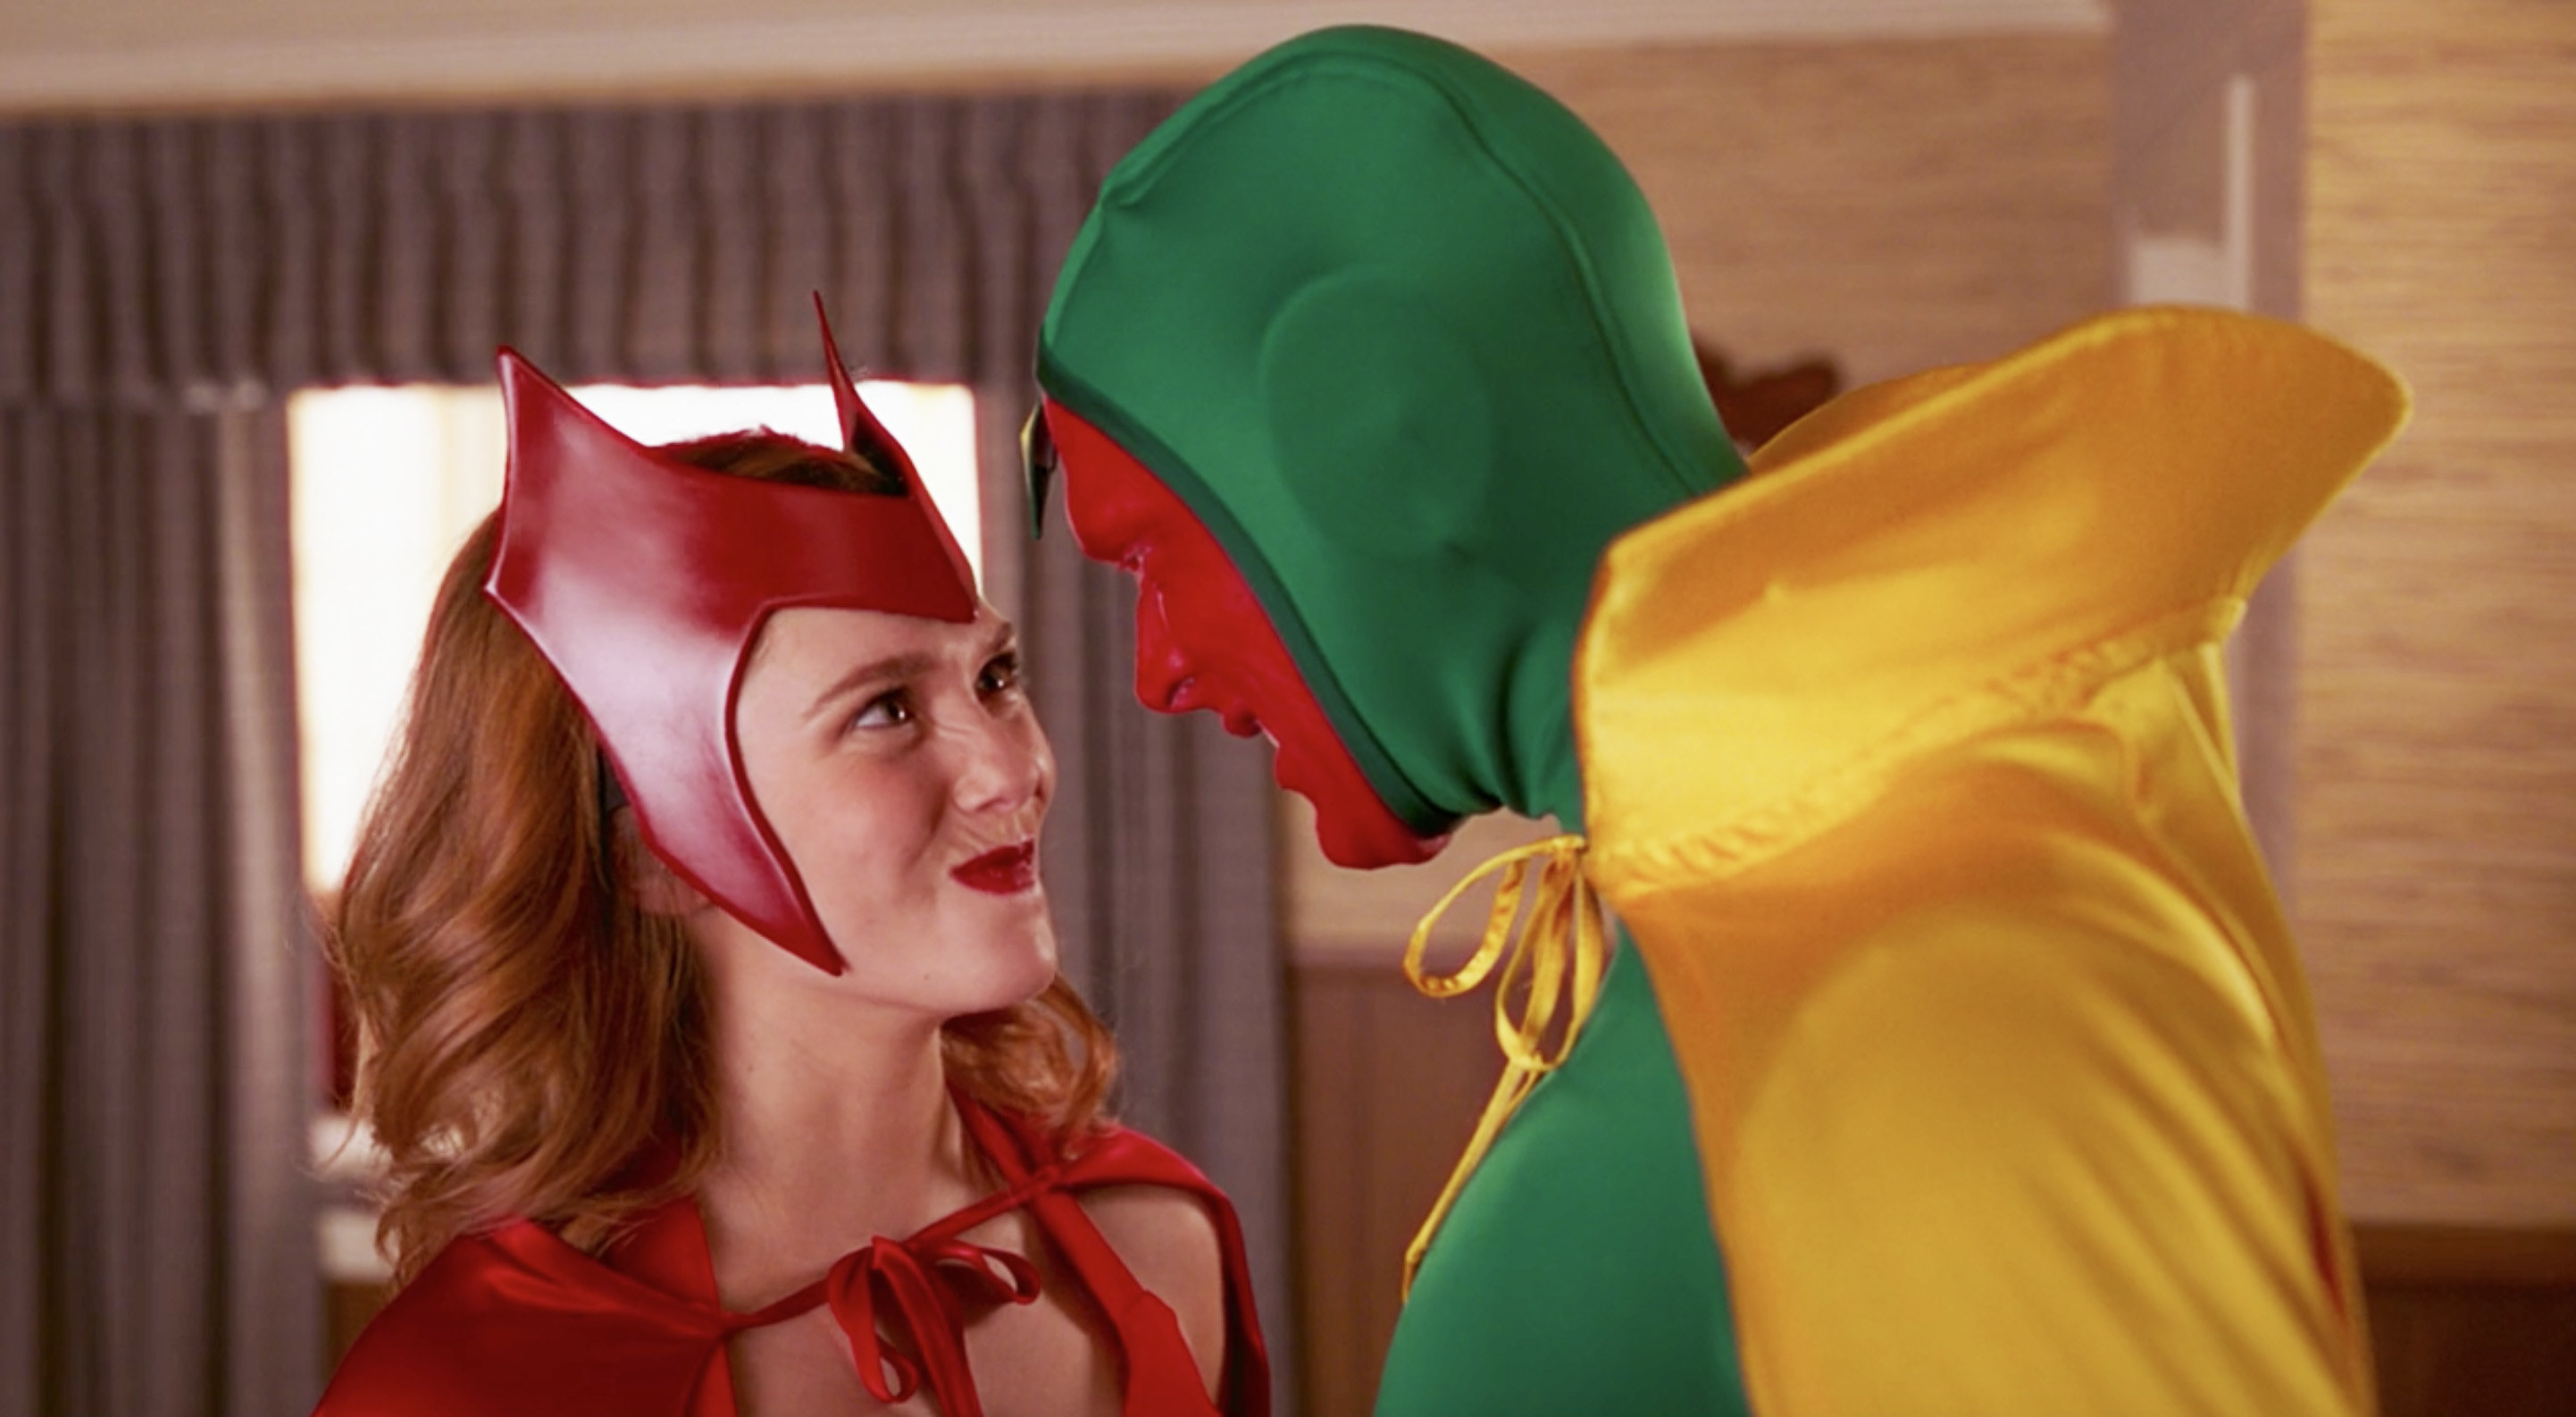 Wanda and Vision dressed up in Halloween costumes in a scene from WandaVision